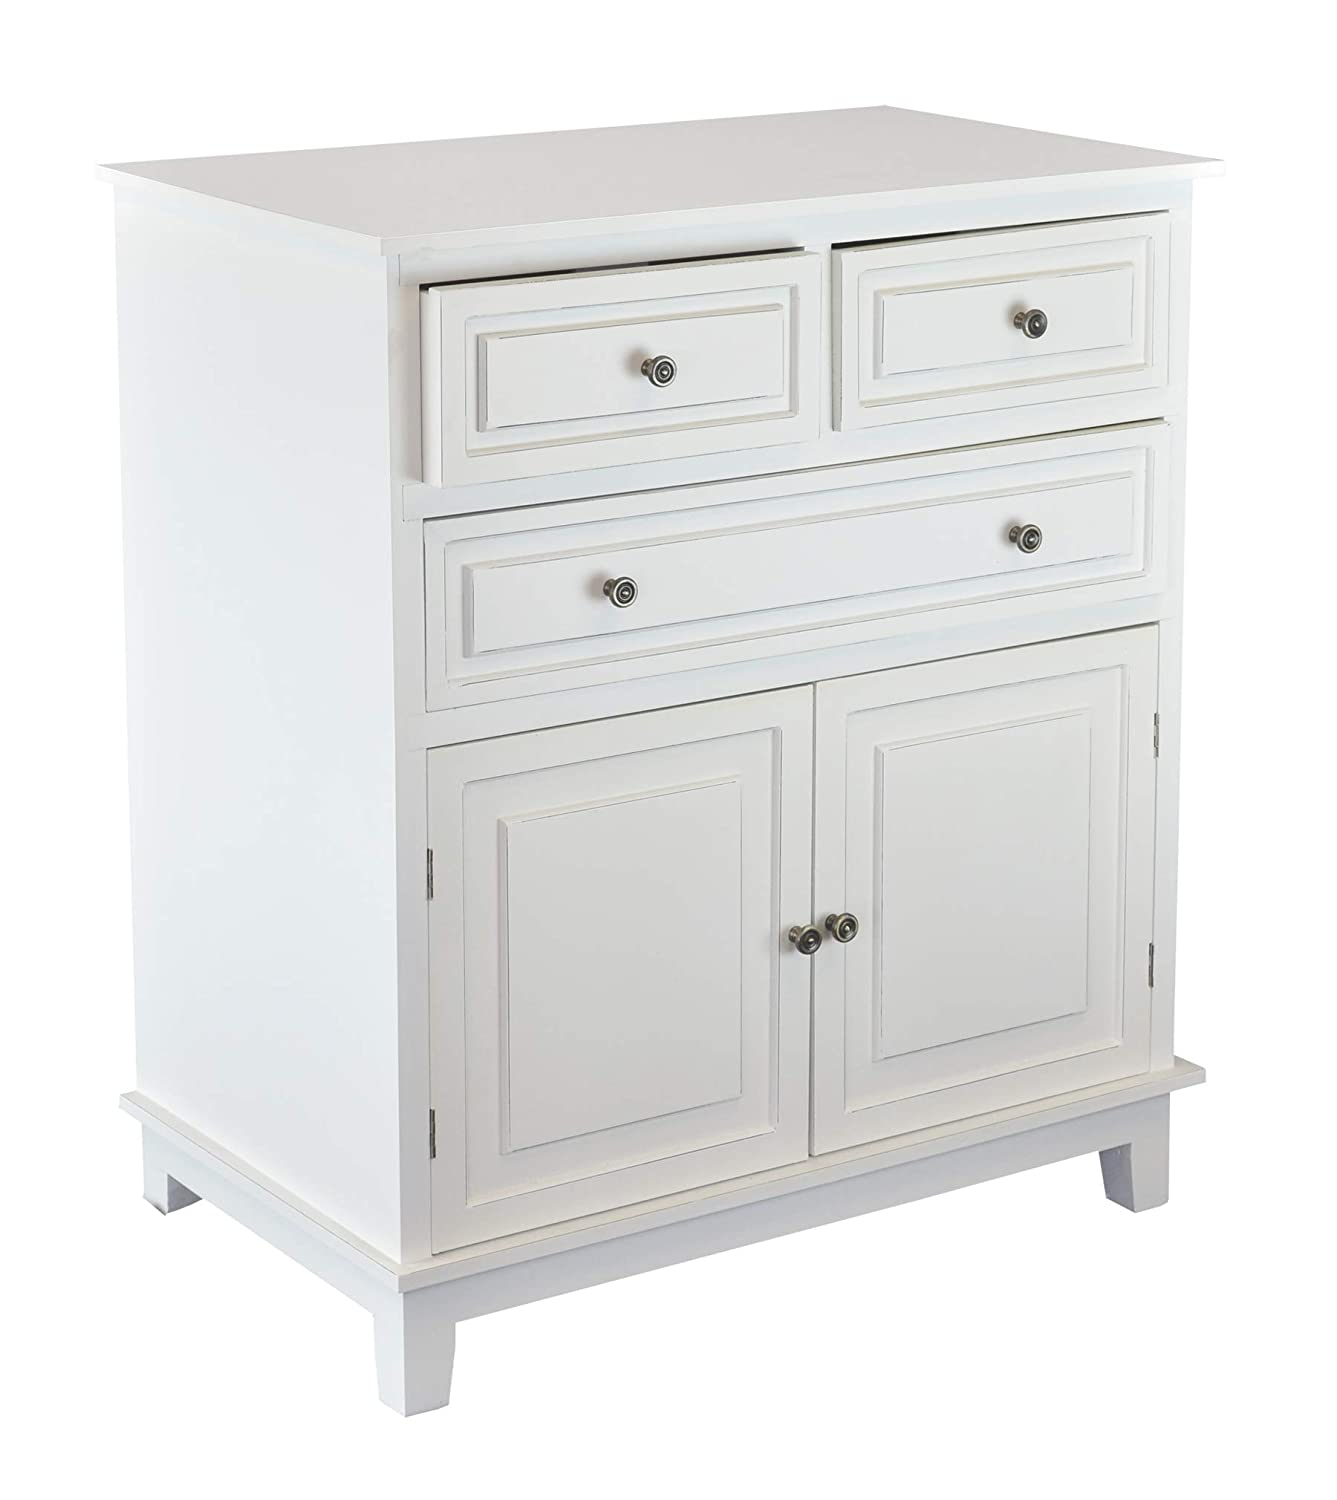 Chest of Drawers White Dressers Side Cabinet Table for Bedroom Livingroom  33 in. 3-Drawers 2 Doors